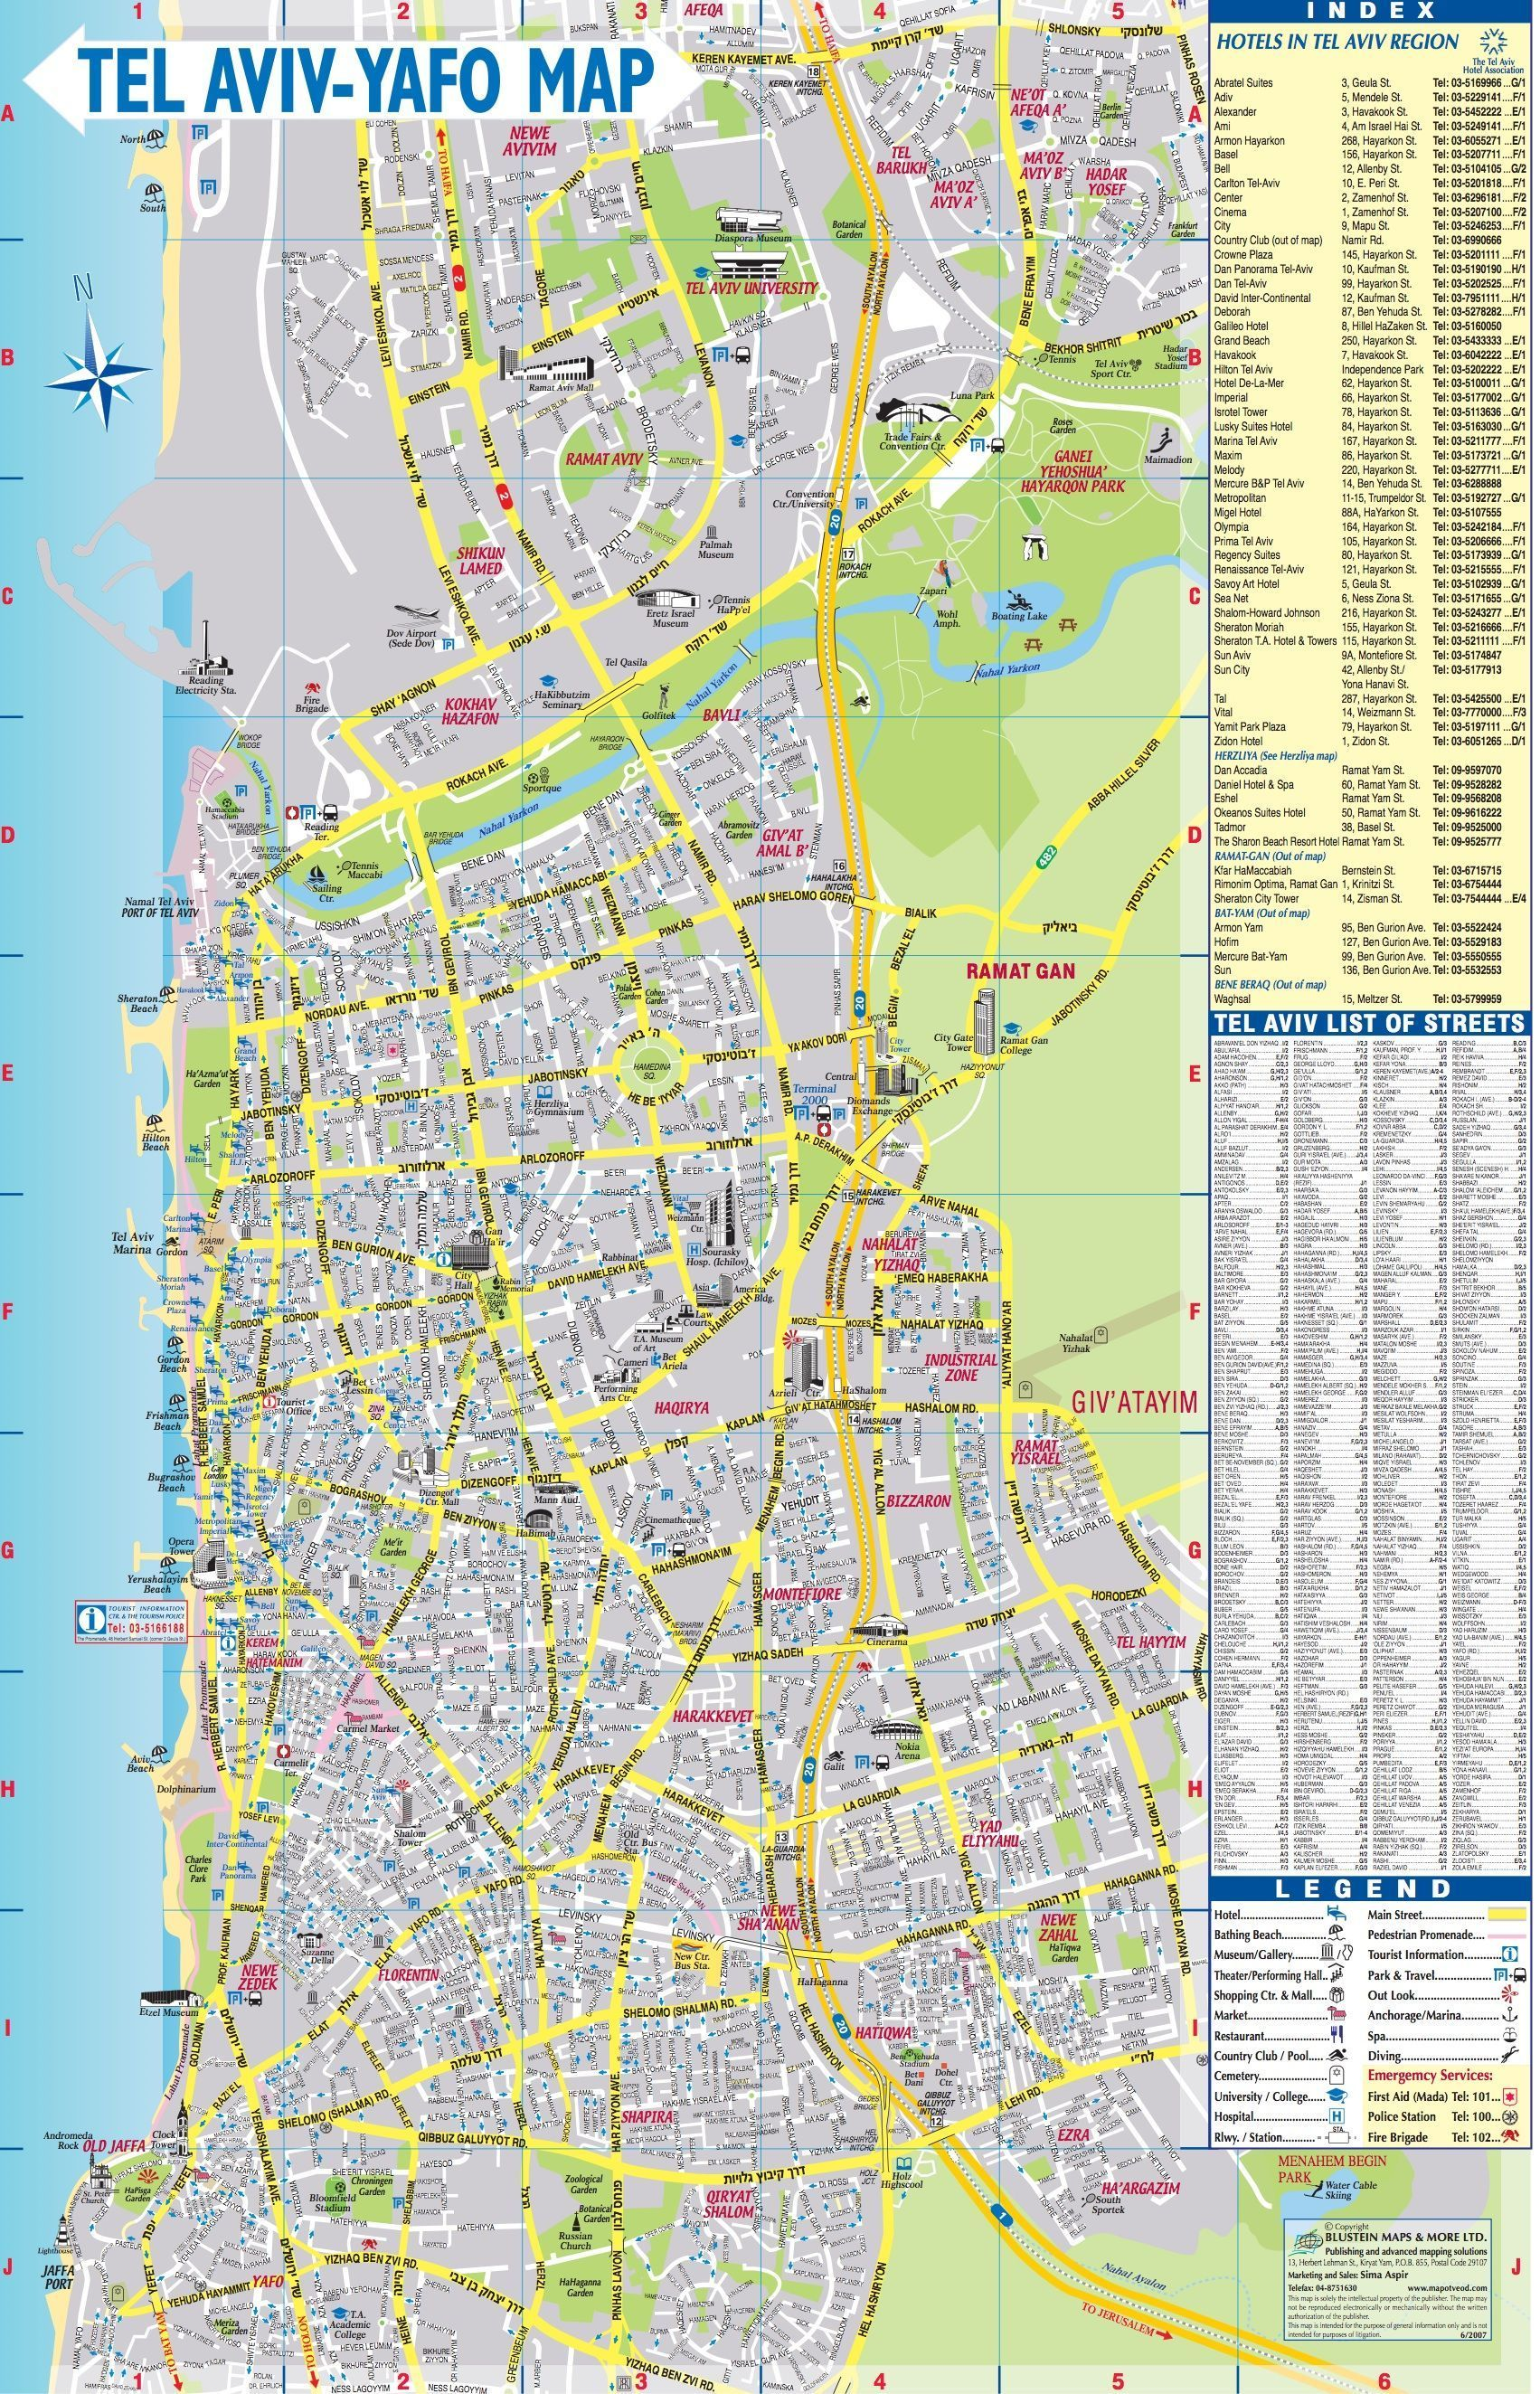 Map Of Tel Aviv Map of Tel Aviv | Maps about Israel | Tel Aviv, Map, Tel aviv israel Map Of Tel Aviv